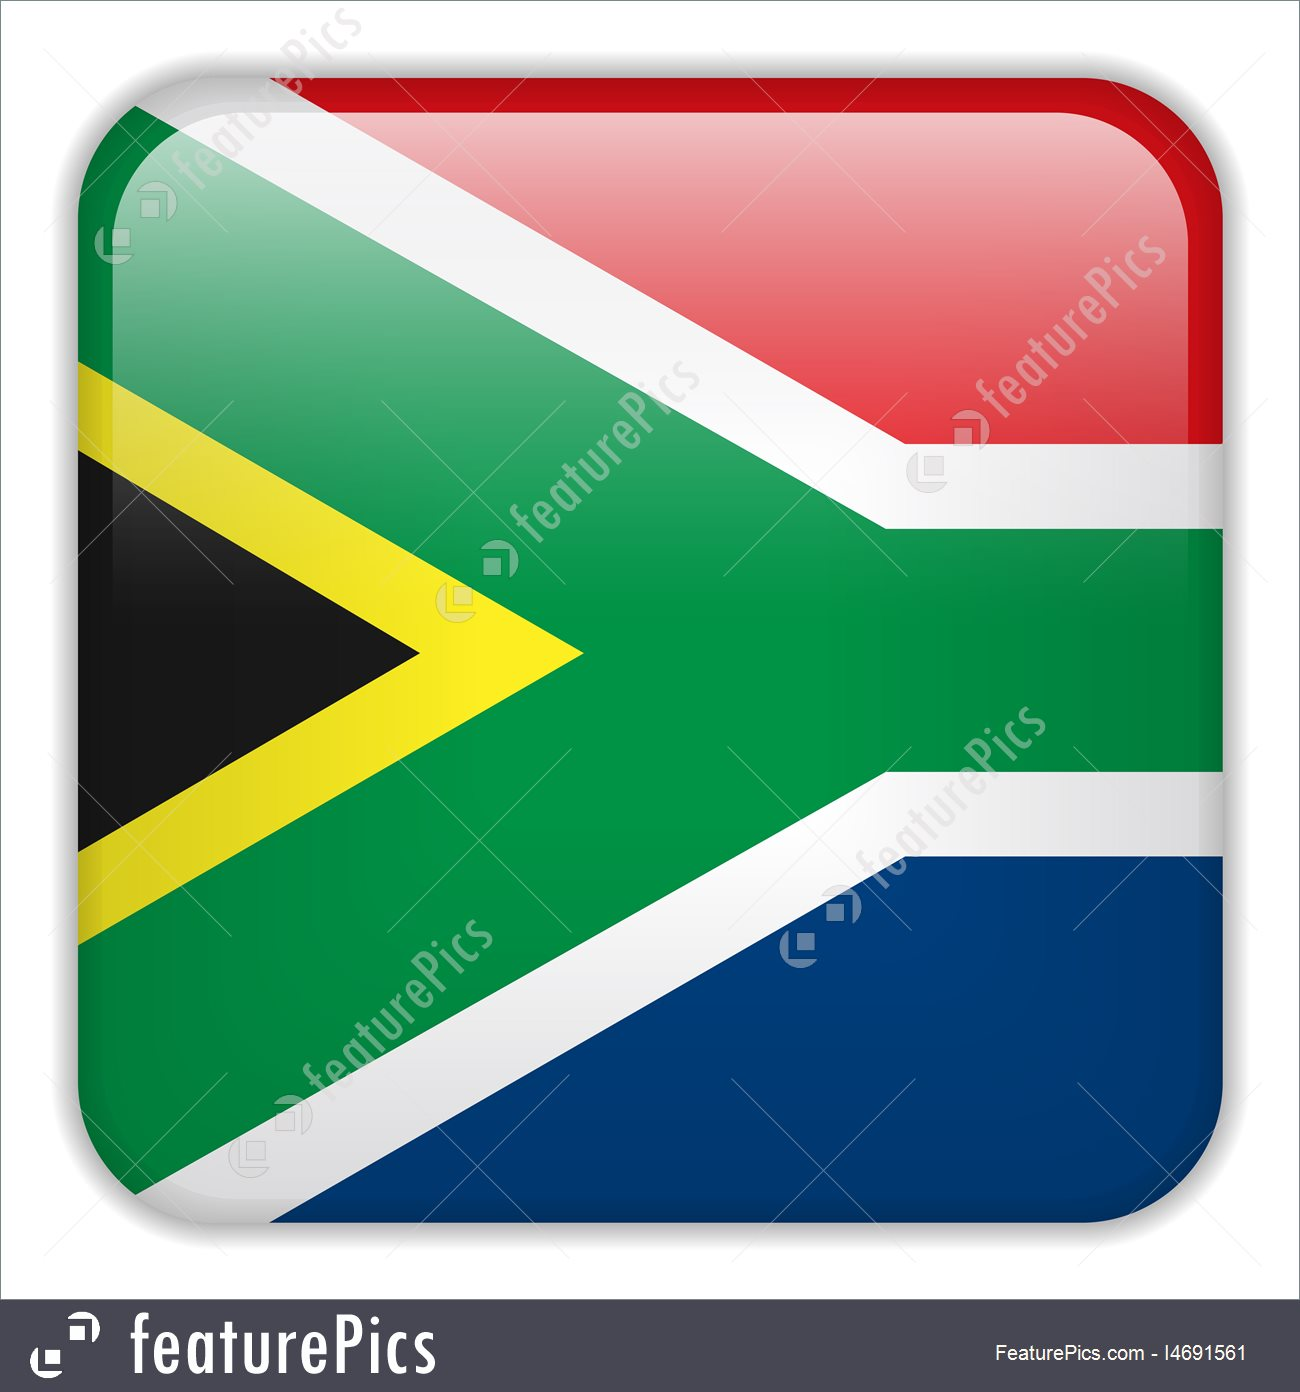 1300x1392 Illustration Of South Africa Flag Smartphone Application Square